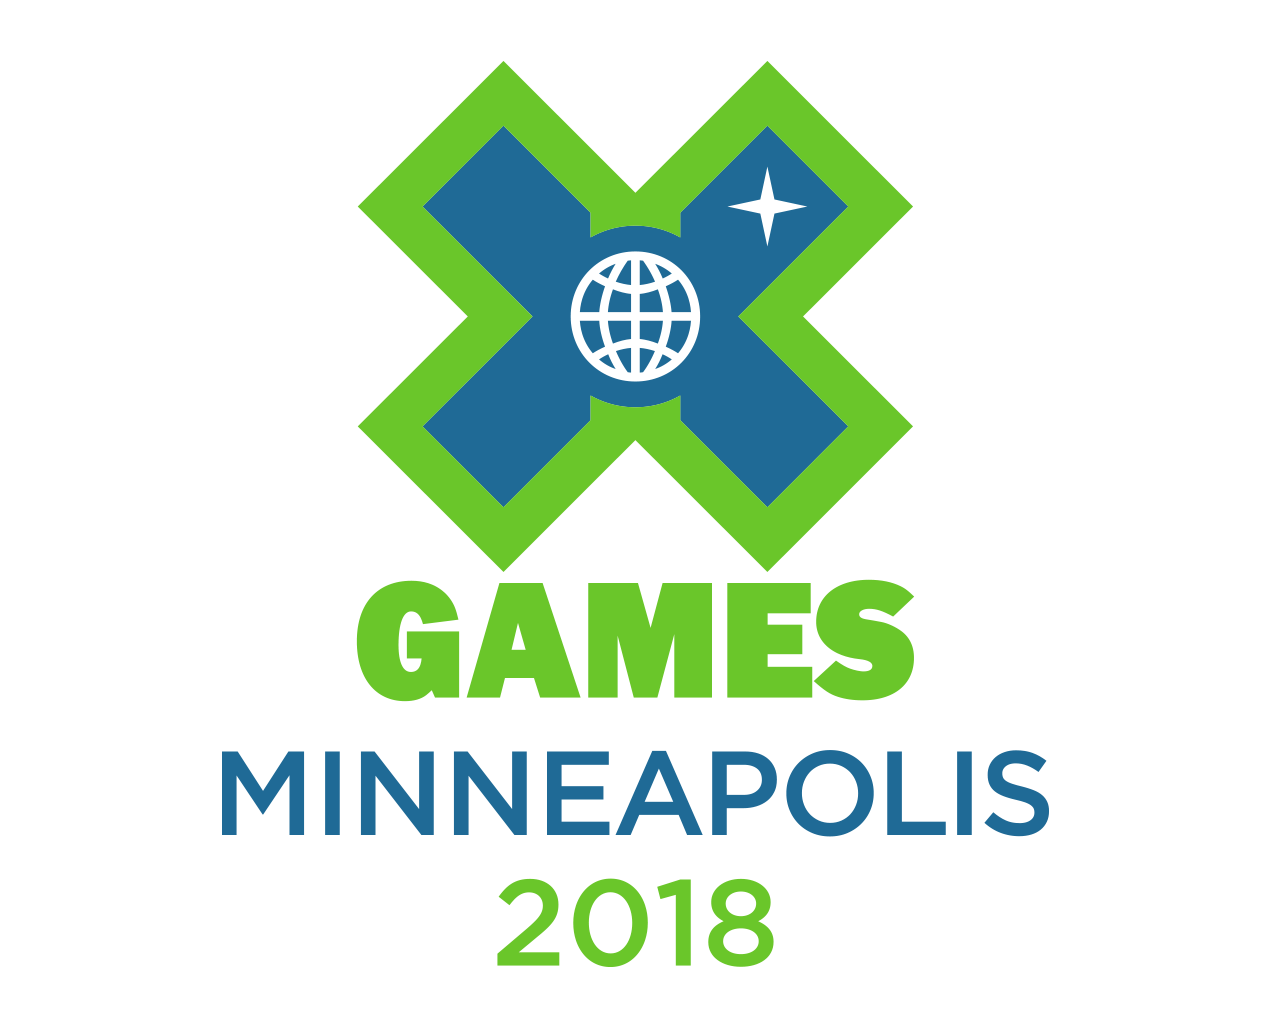 X Games Minneapolis 2019 messages sticker-2